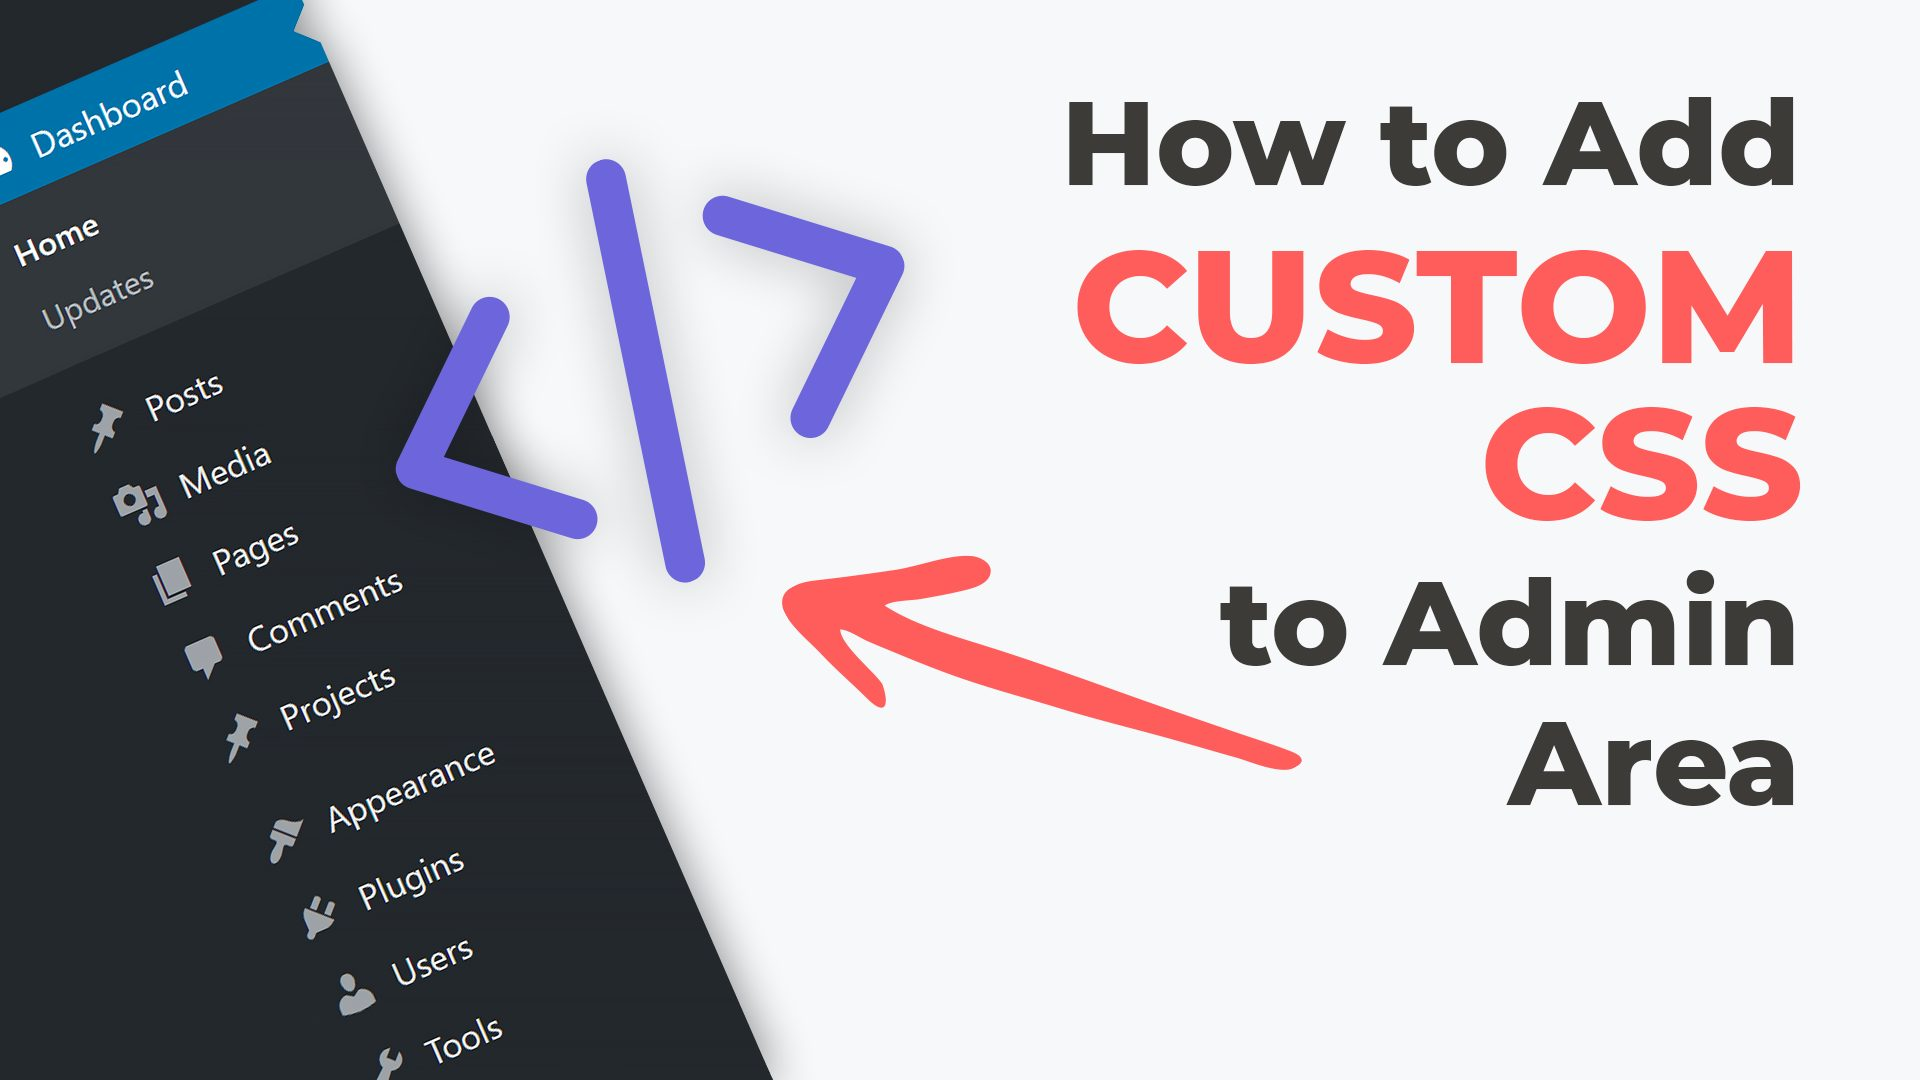 How to Add Custom CSS to Admin Area